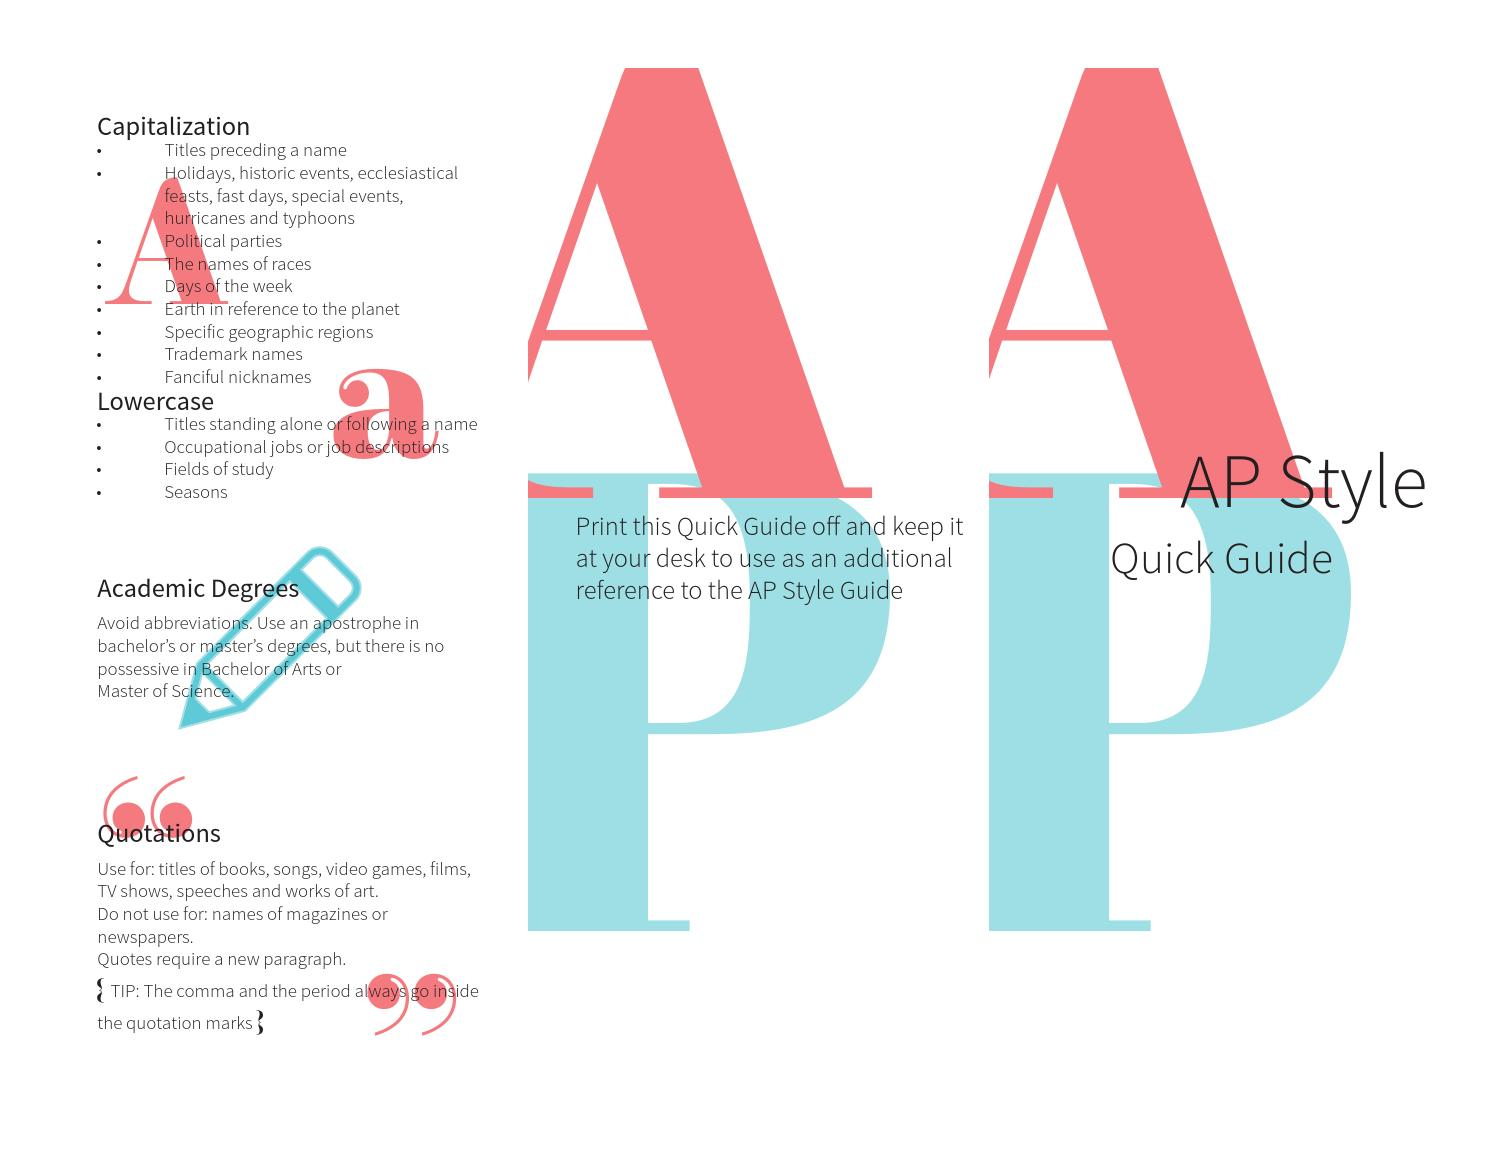 11 AP Style Guide Rules That Are Easy to Mess Up